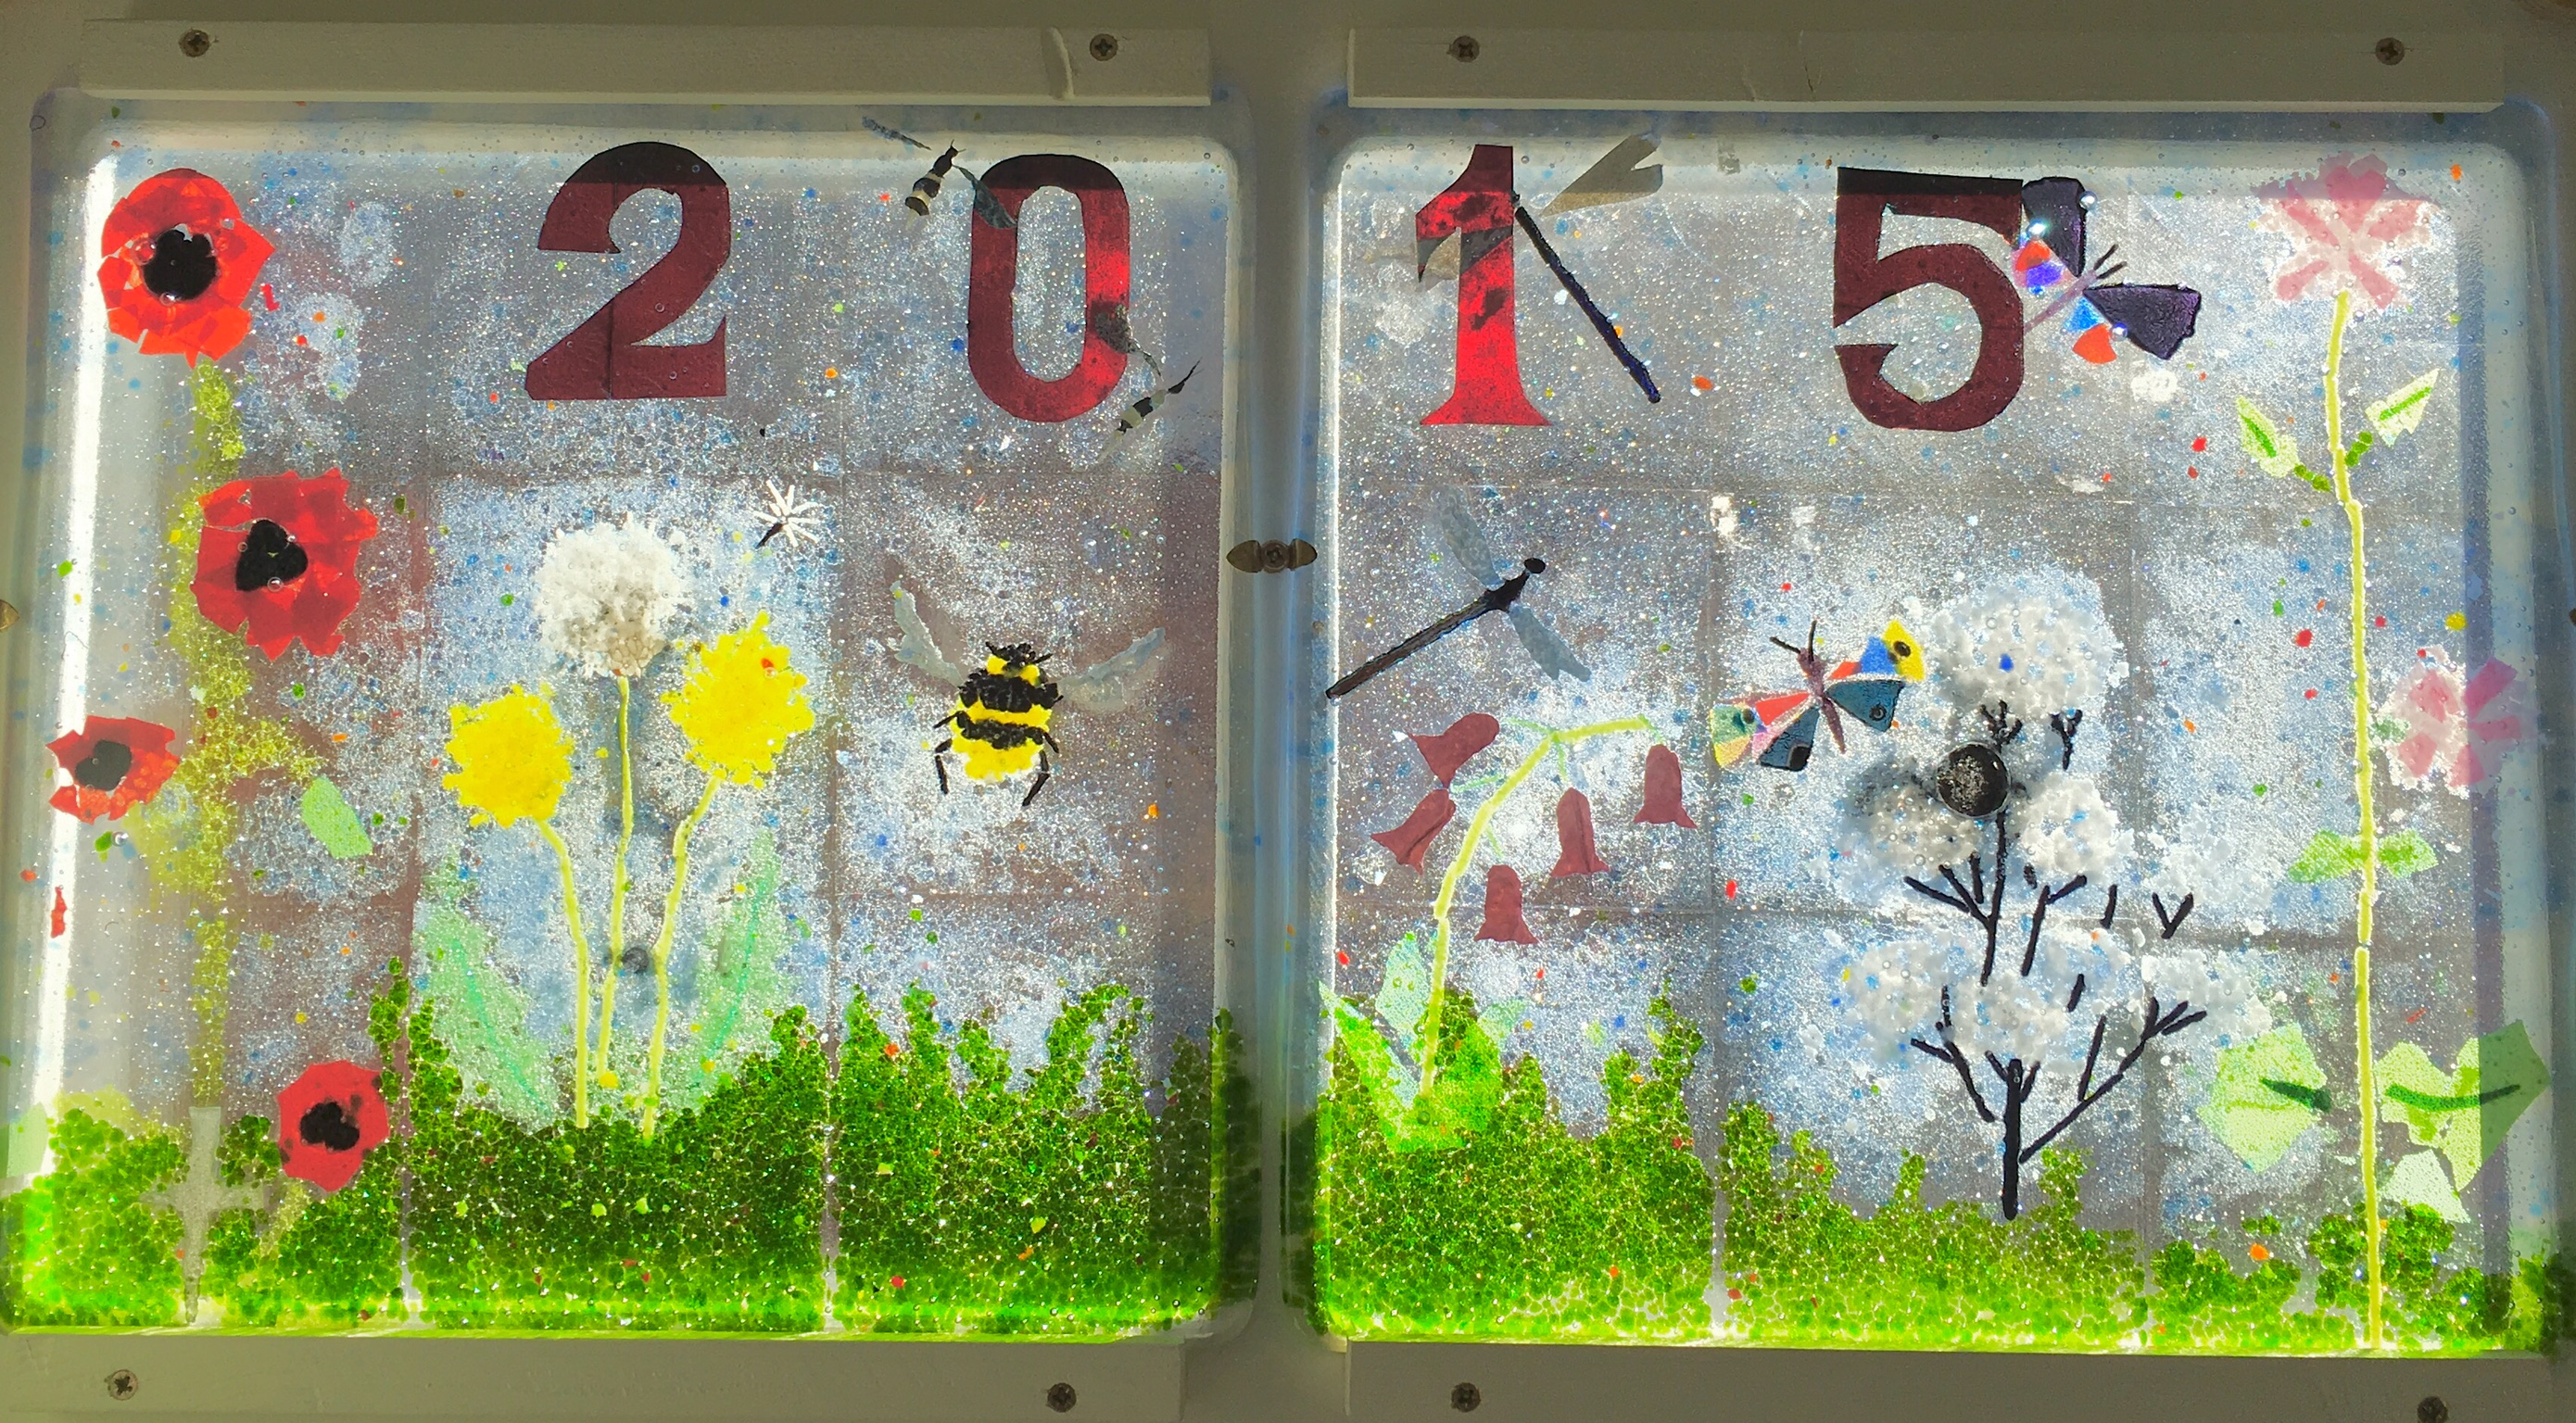 One of ten glass fused panels made by Y6, part of the 2015 leavers legacy window